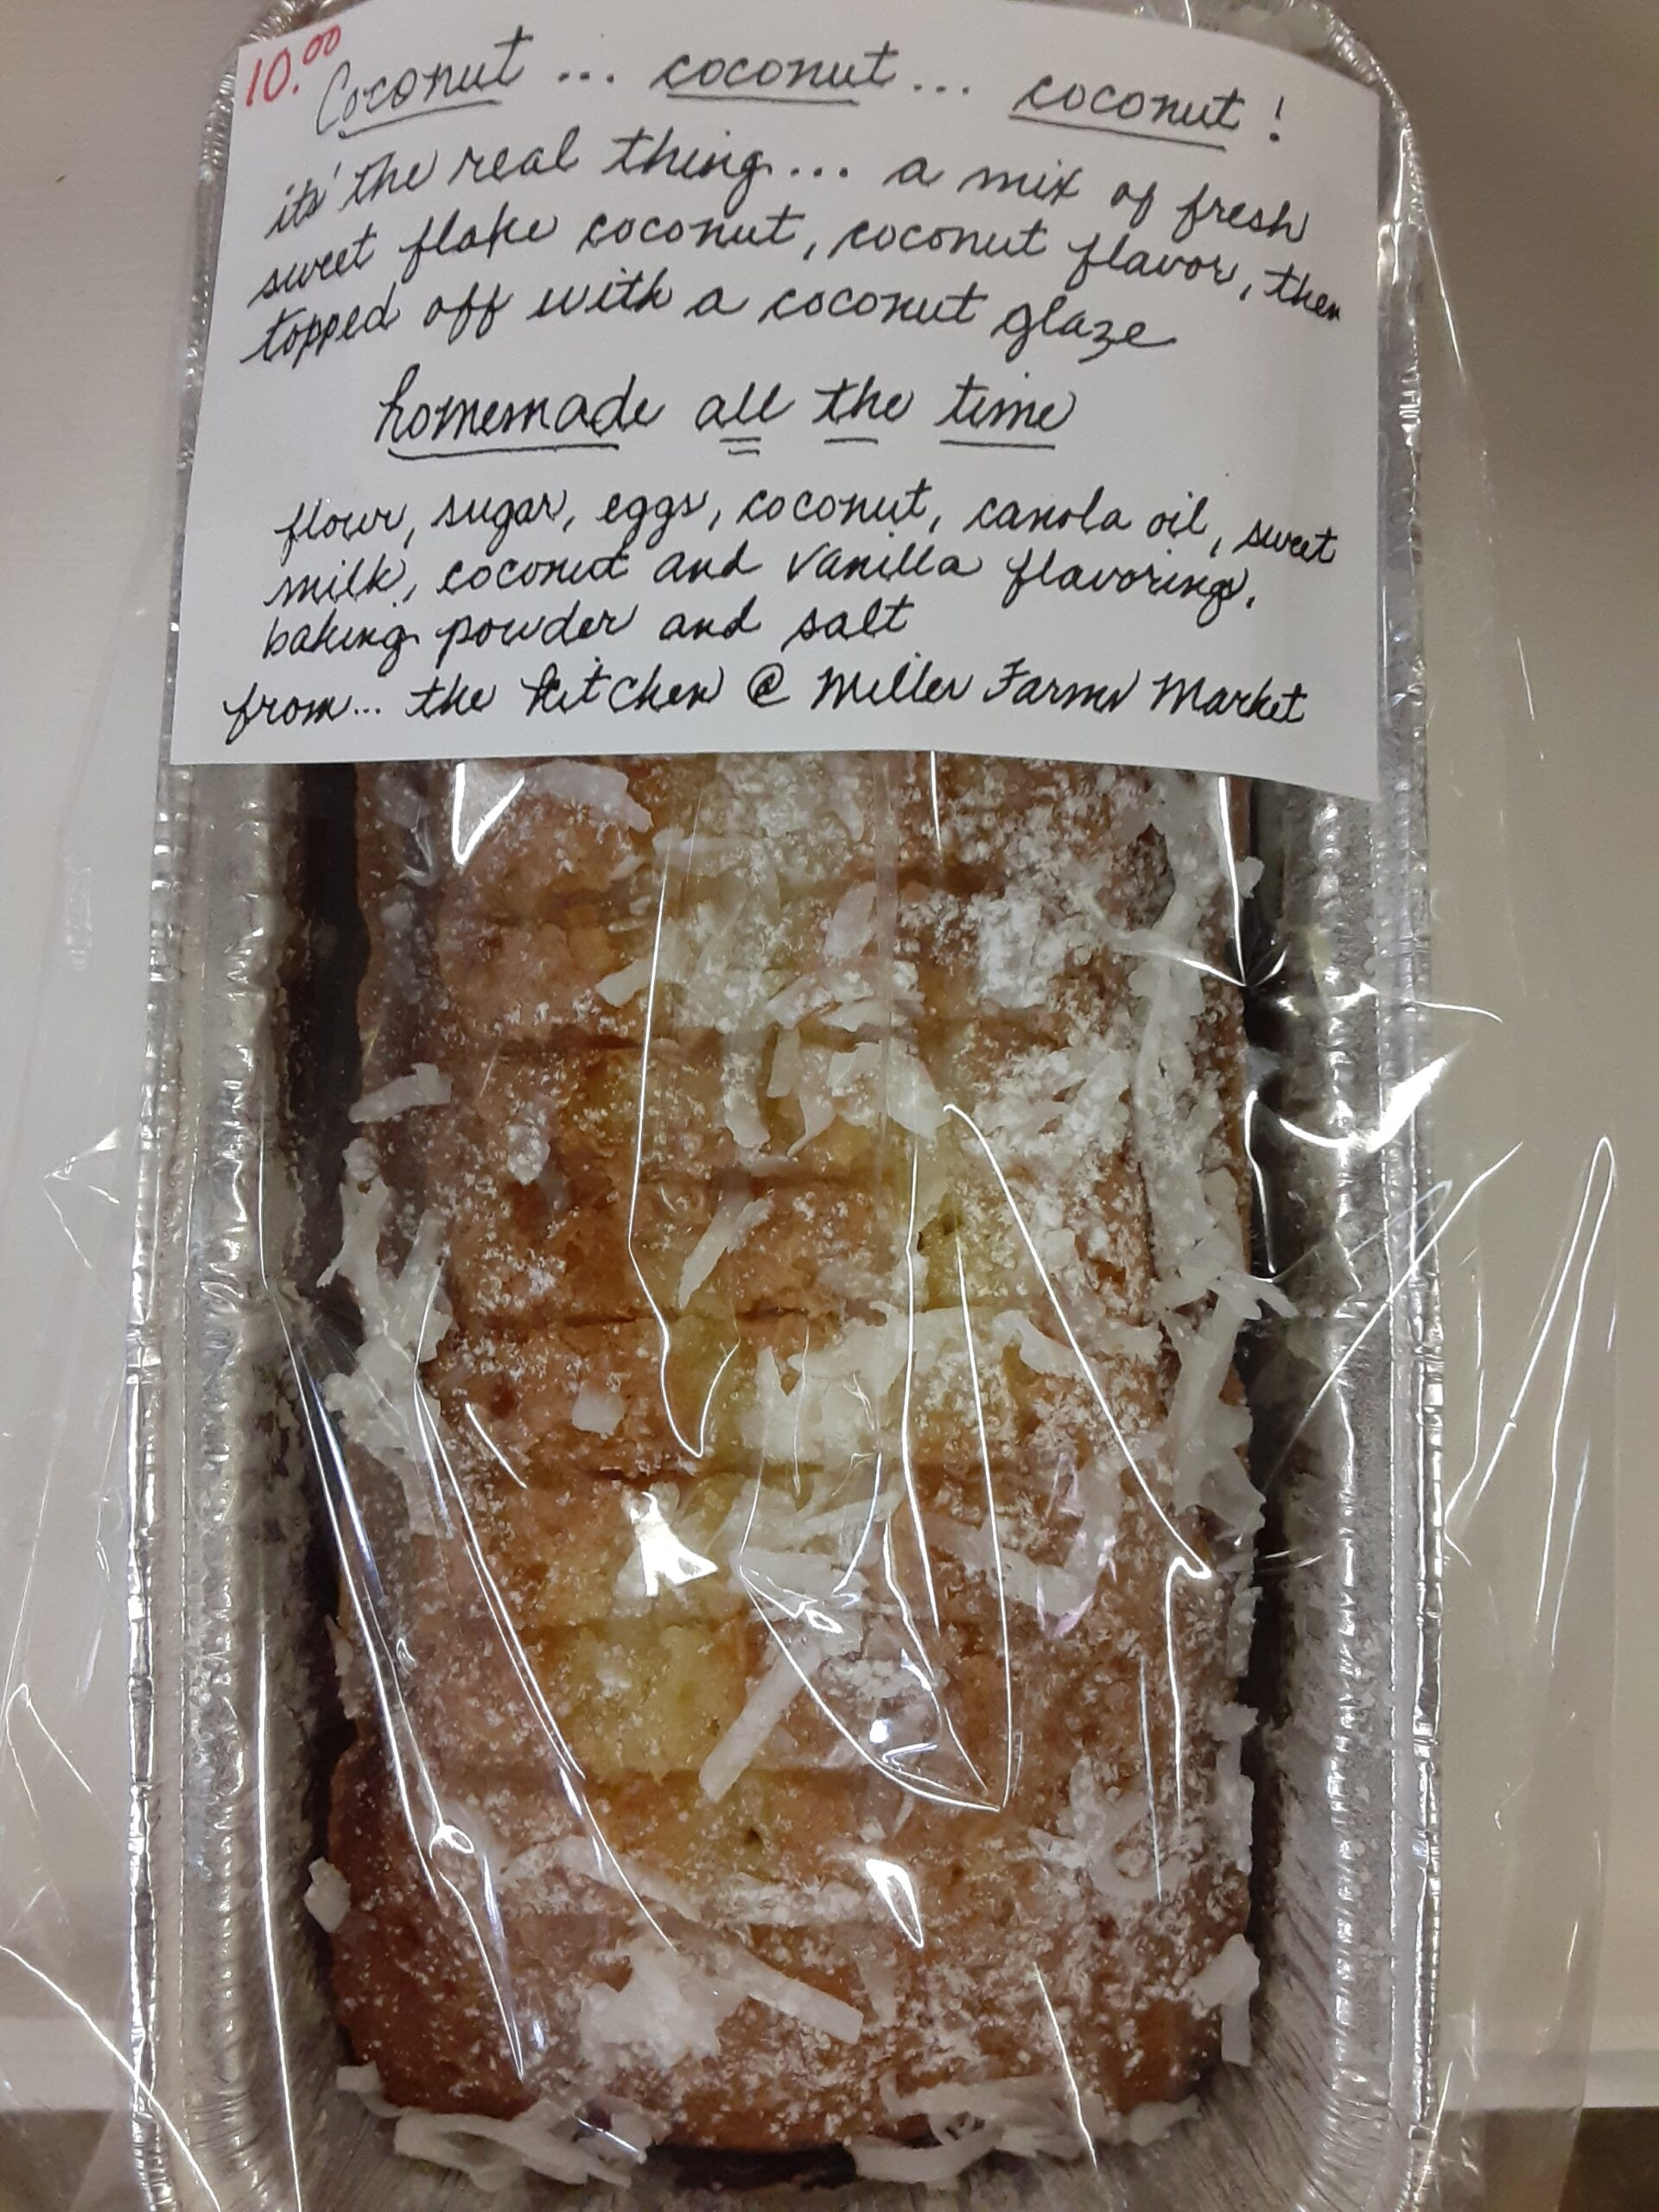 Have you tried JoJo's Sweet Breads? Which one is your favorite? Mr. Ben's is the Coconut Coconut Coconut.